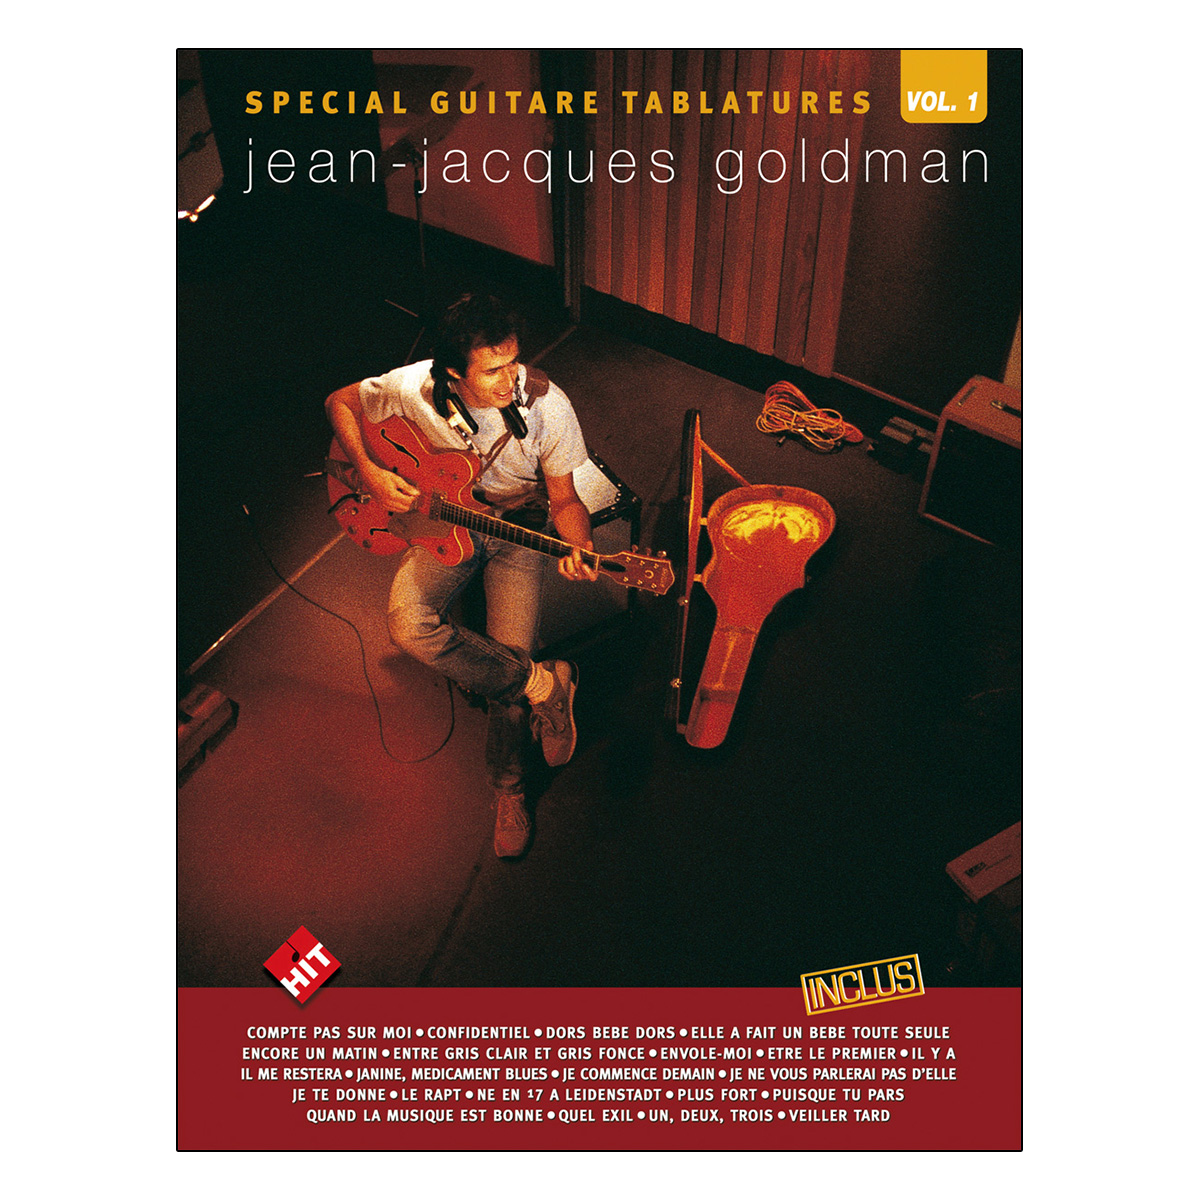 Spécial guitare tablatures vol.1 Jean-Jacques Goldman